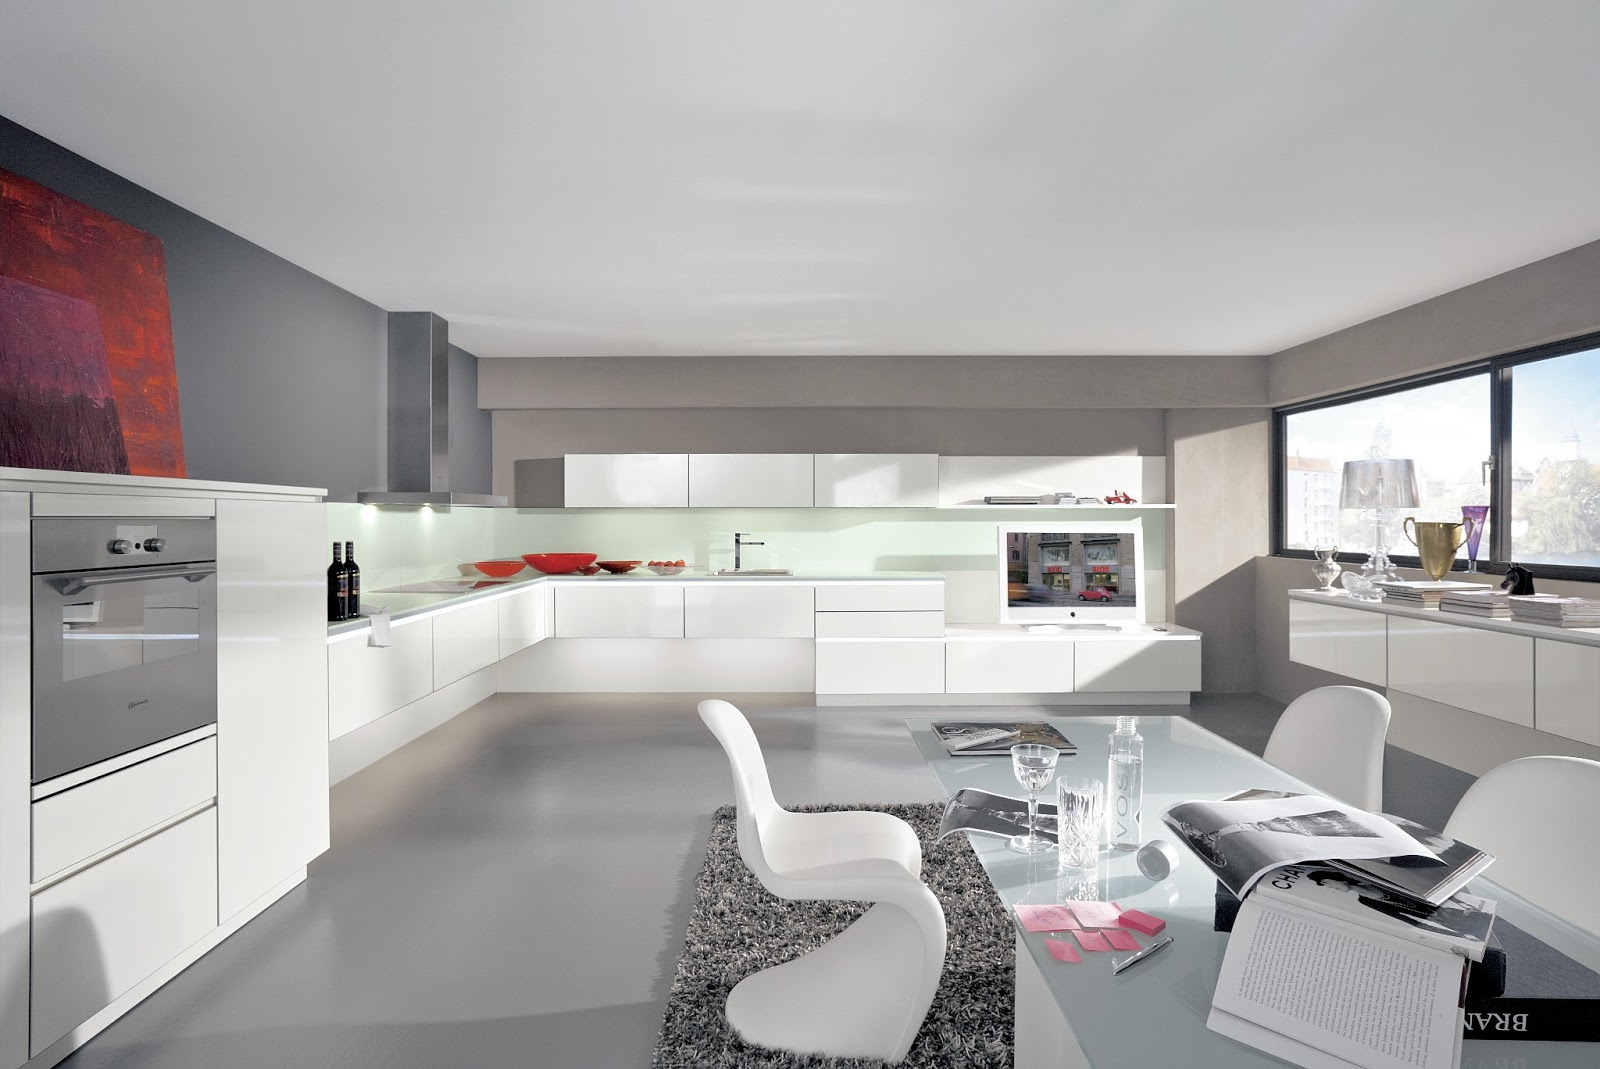 Cuisine design blanche en l for Cuisine design en u